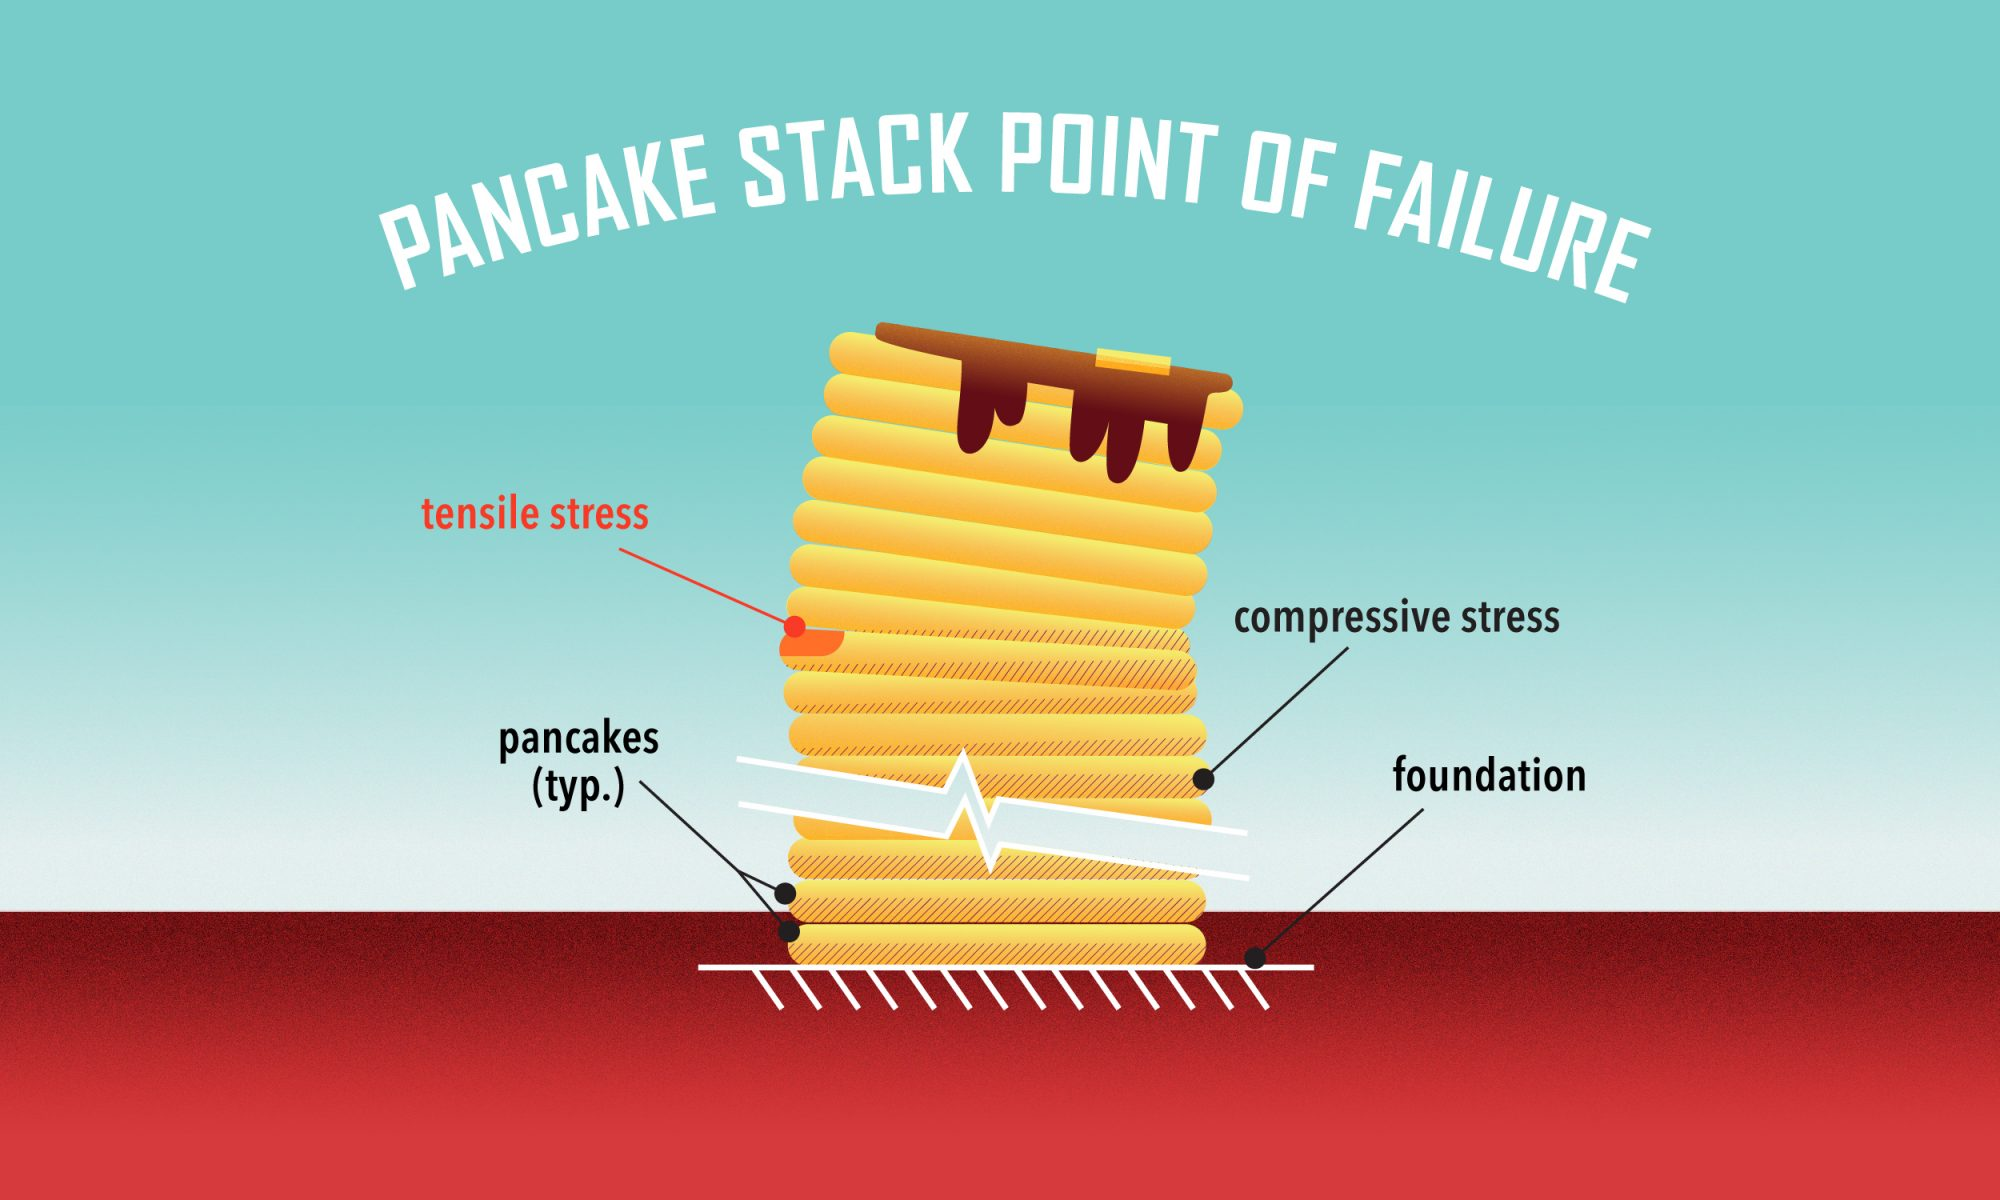 EC: How to Make the World's Tallest Stack of Pancakes According to an Engineer